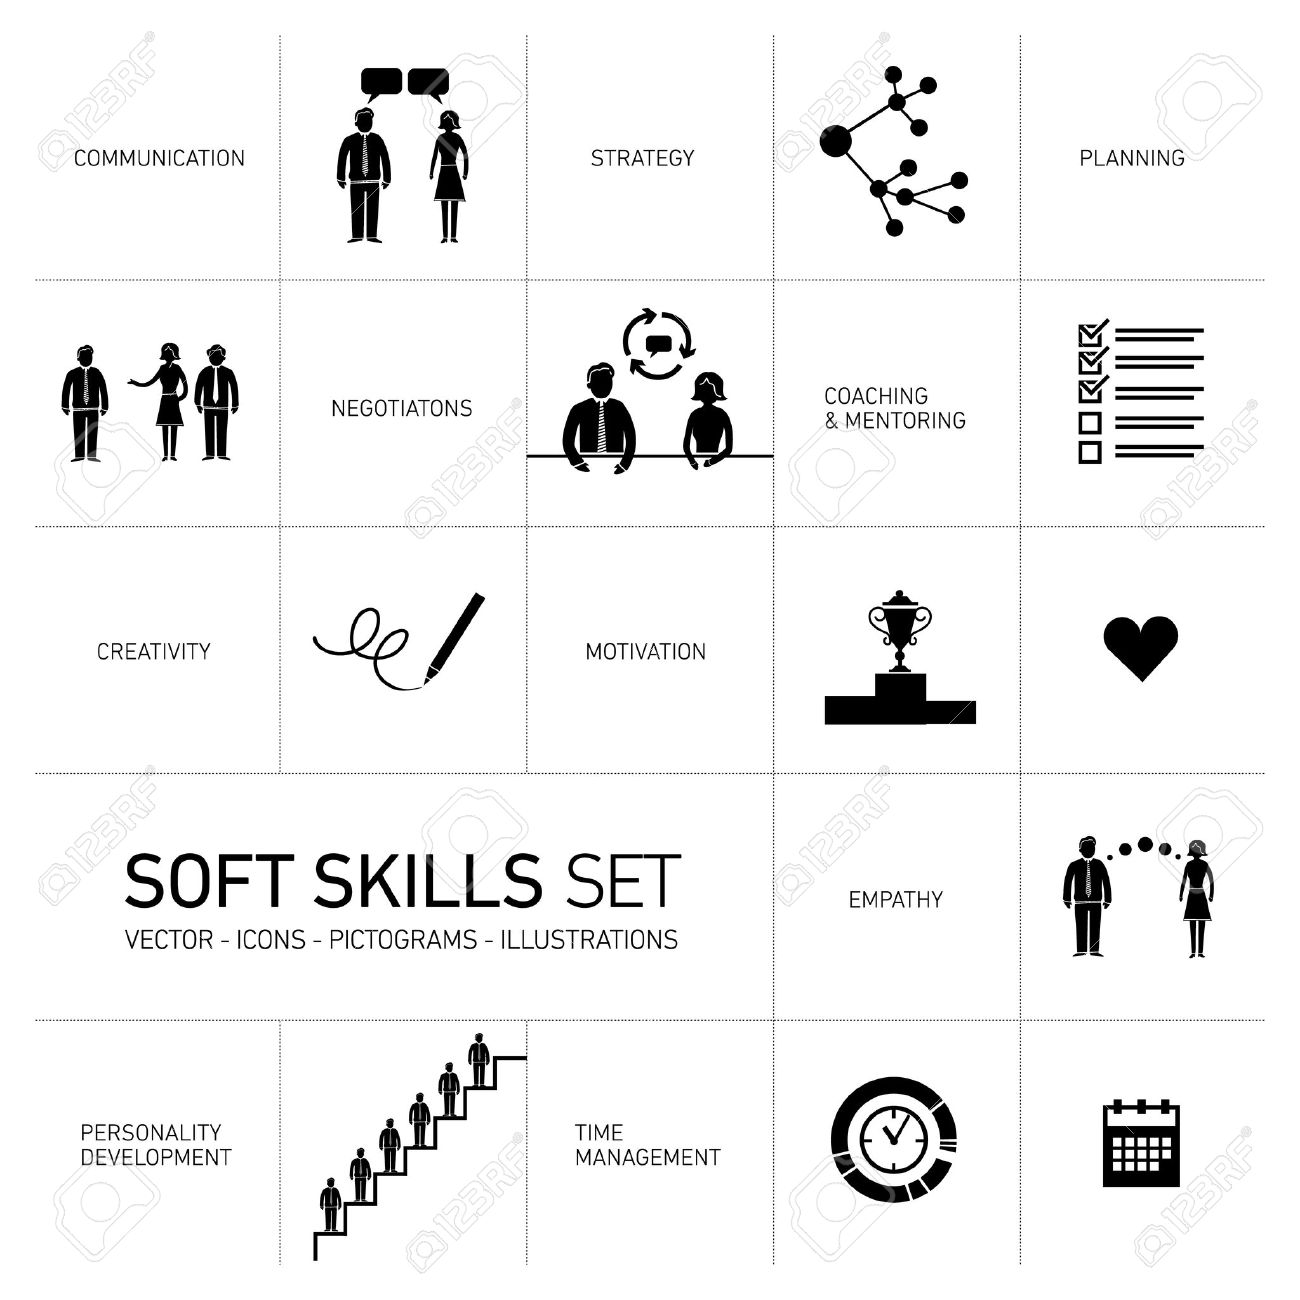 soft skills stock photos pictures royalty soft skills soft skills soft skills vector icons and pictograms set black on white background